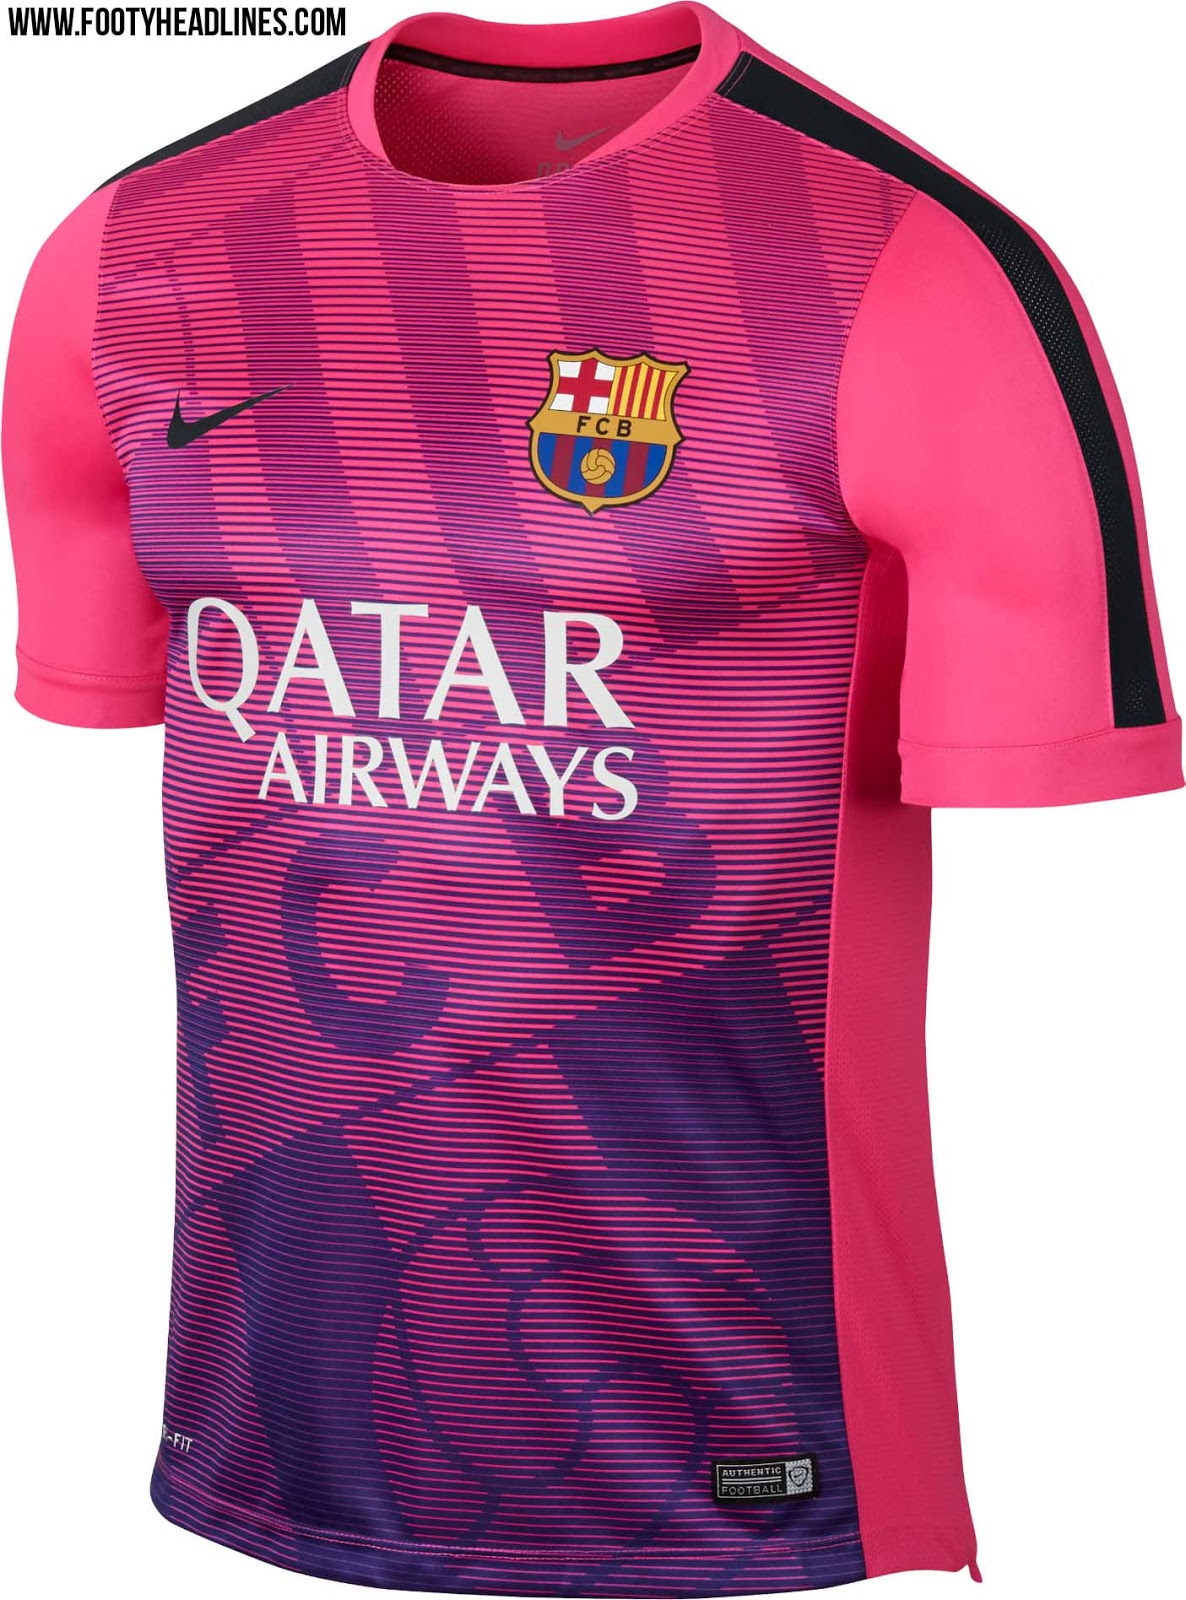 New FC Barcelona 2015 Training and Pre-Match Shirts